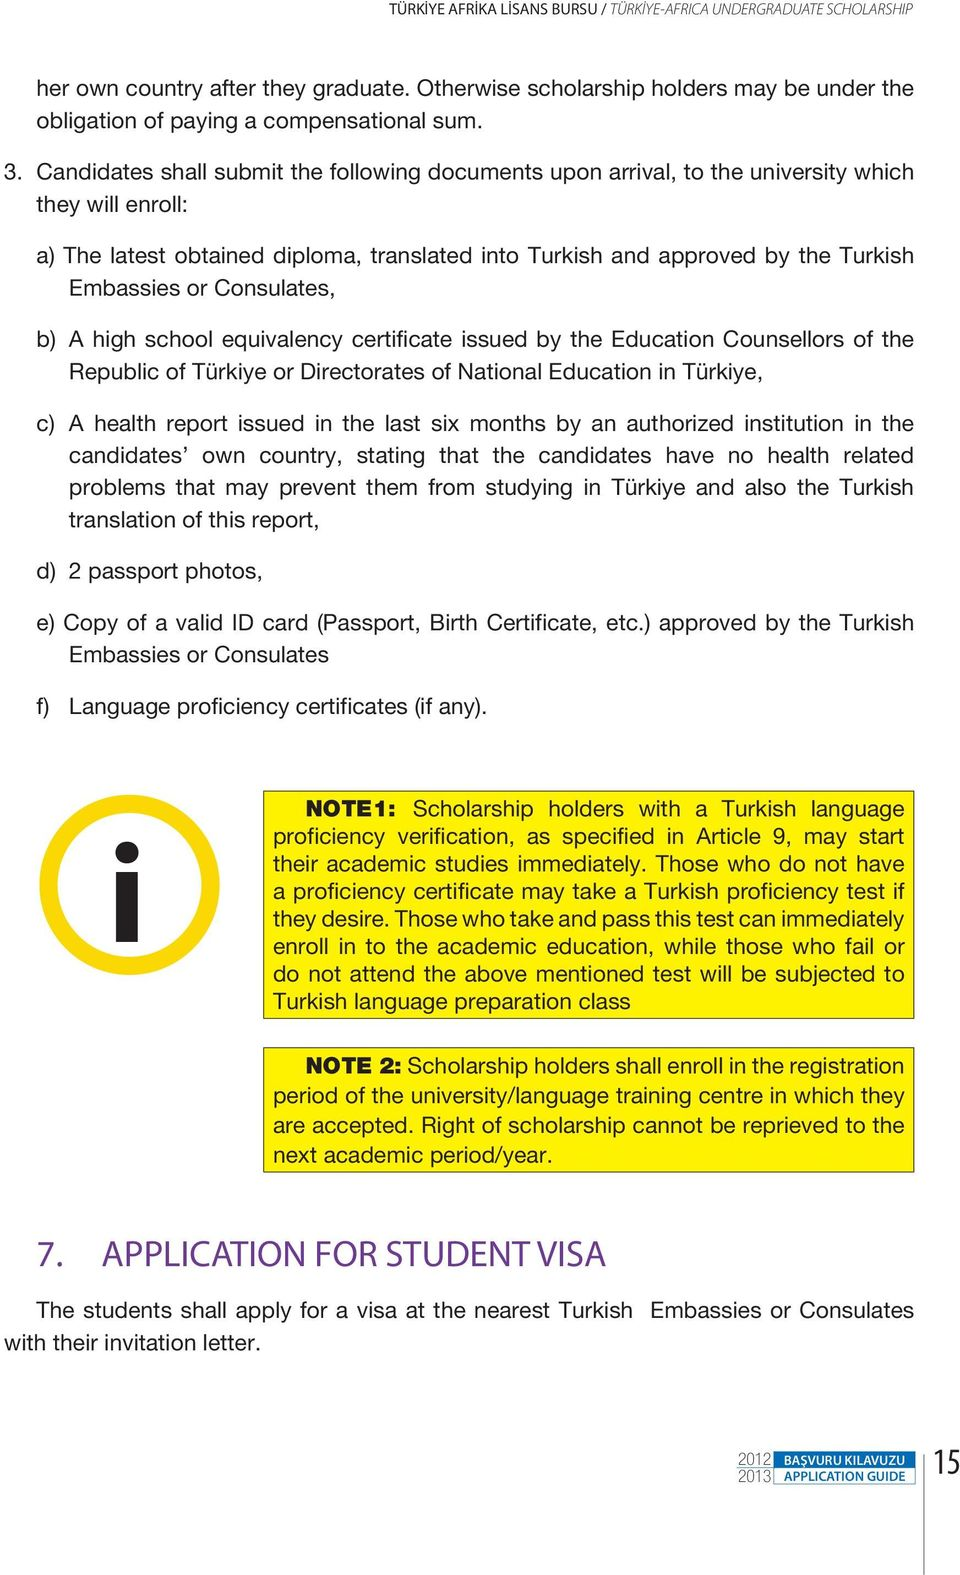 or Consulates, b) A high school equivalency certificate issued by the Education Counsellors of the Republic of Türkiye or Directorates of National Education in Türkiye, c) A health report issued in